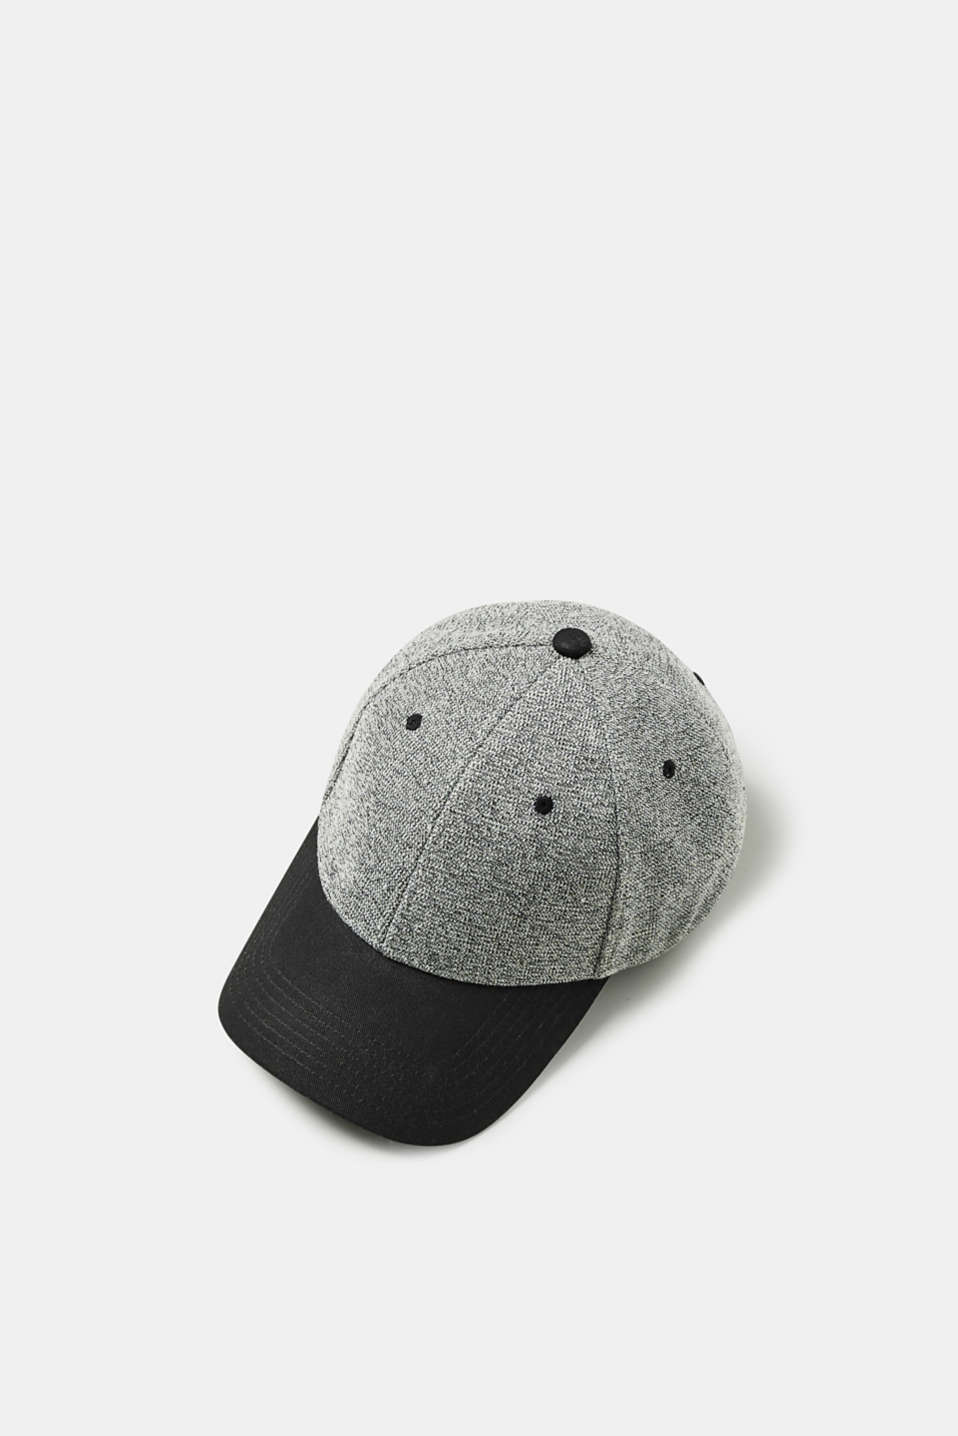 The combination of mottled and twill textured materials gives this cap its unique look.